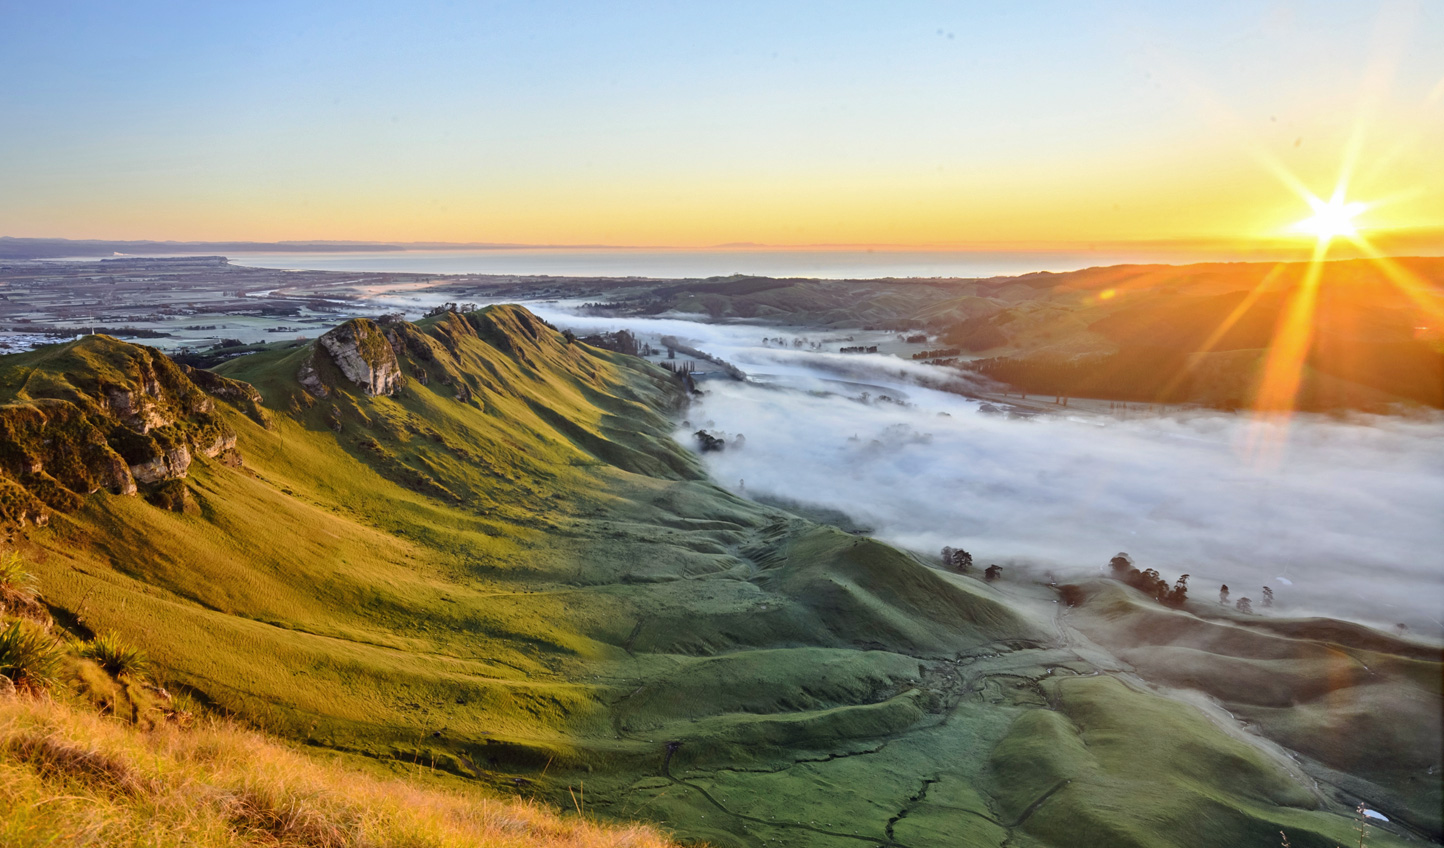 Watch the sunrise over Hawke's Bay